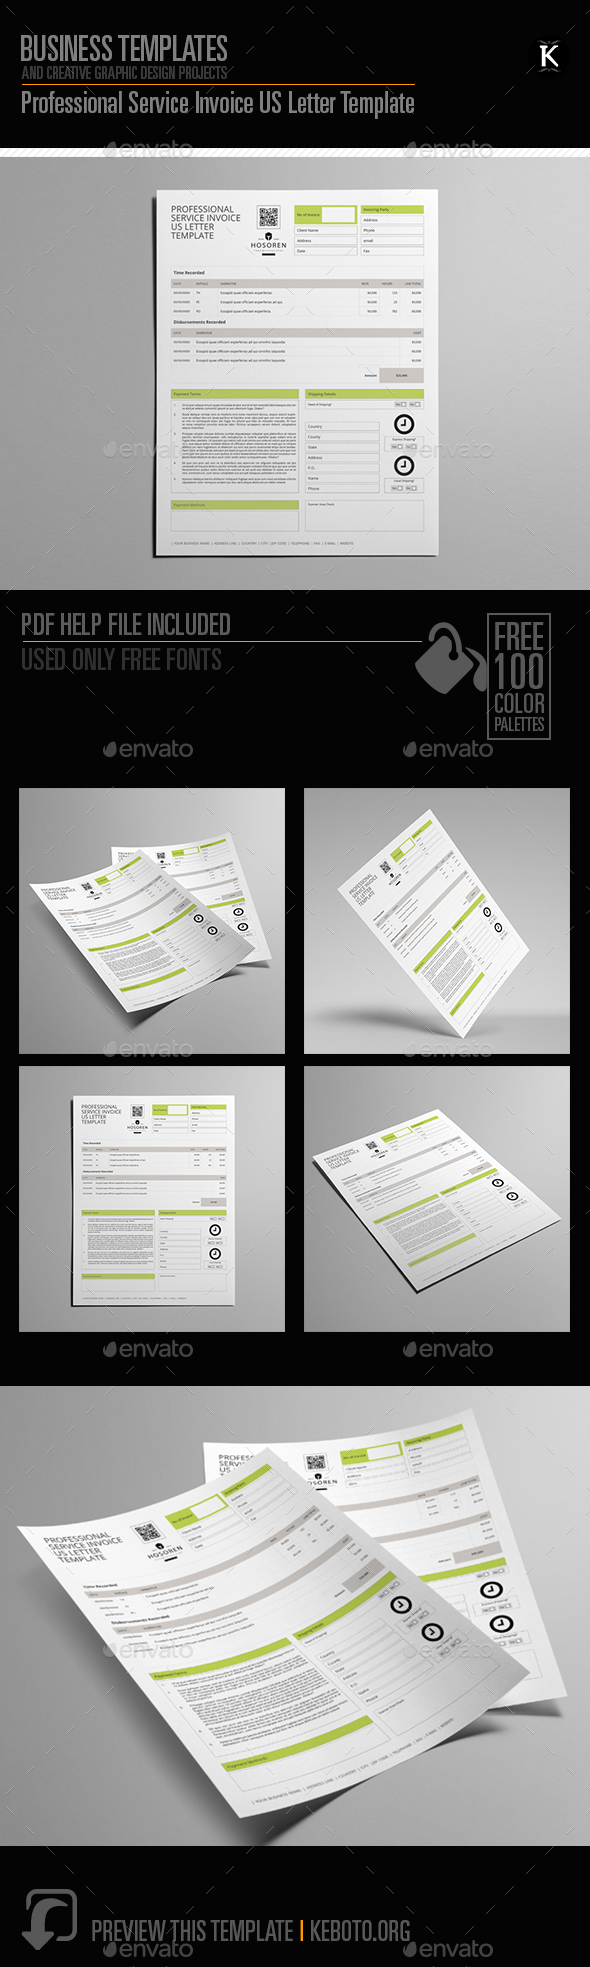 Professional Service Invoice US Letter Template - Proposals & Invoices Stationery